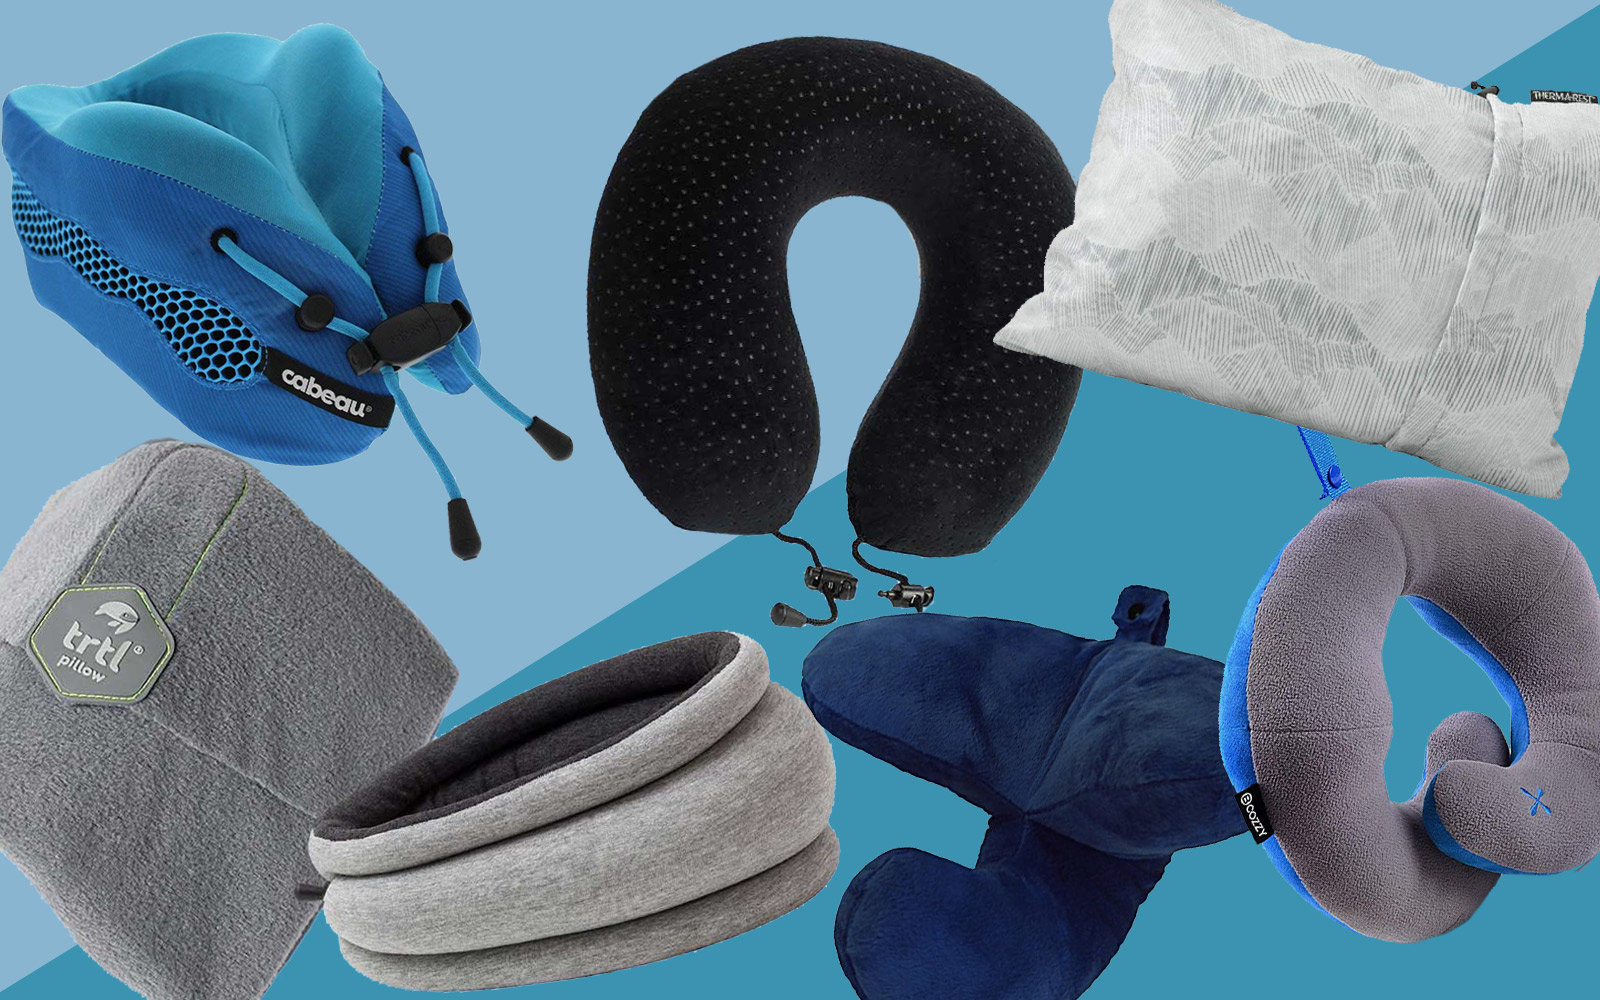 The 15 Best Travel Pillows for Every Type of Seat Sleeper